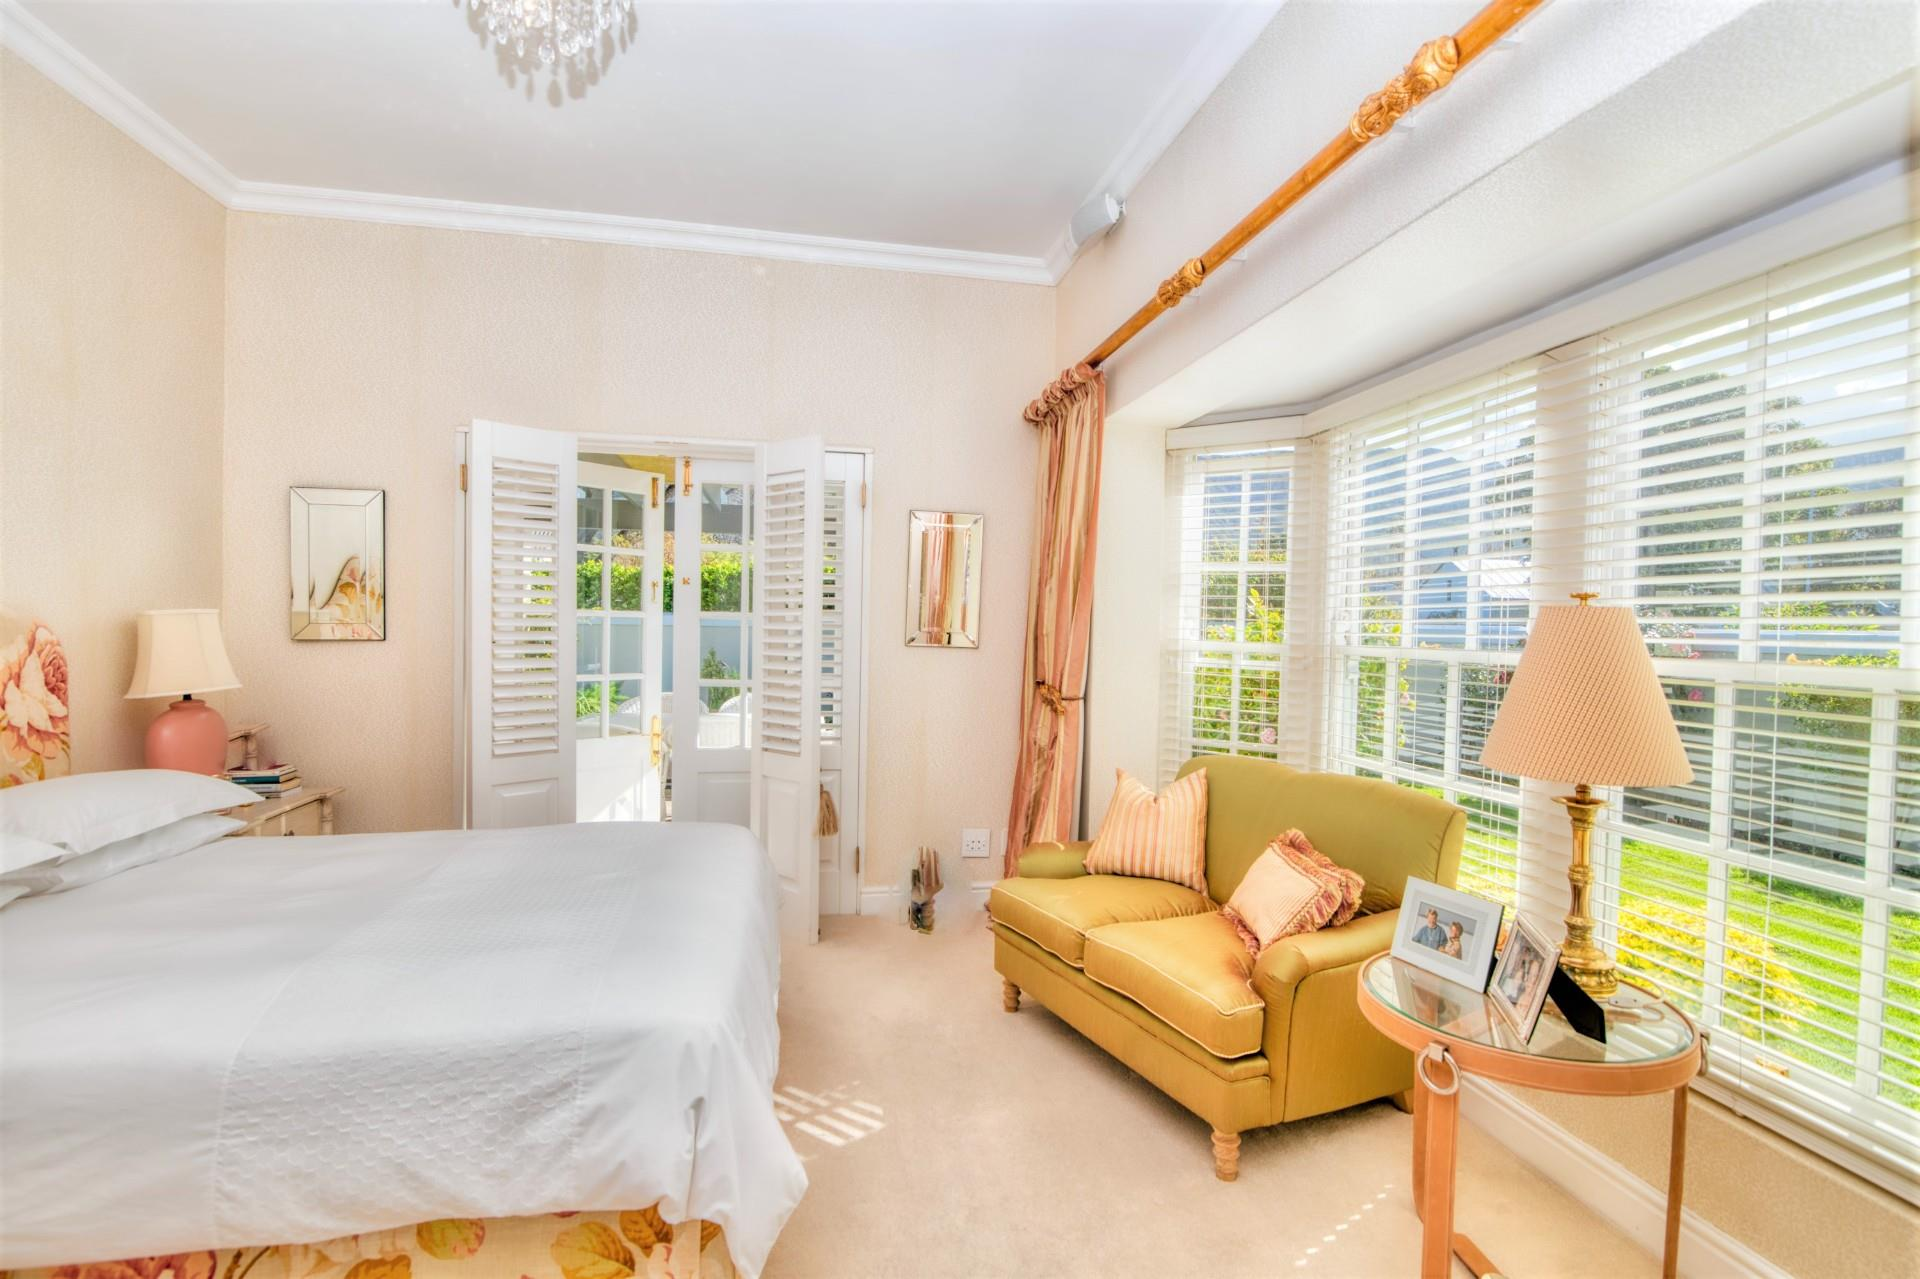 3 Bedroom House For Sale in Eastcliff